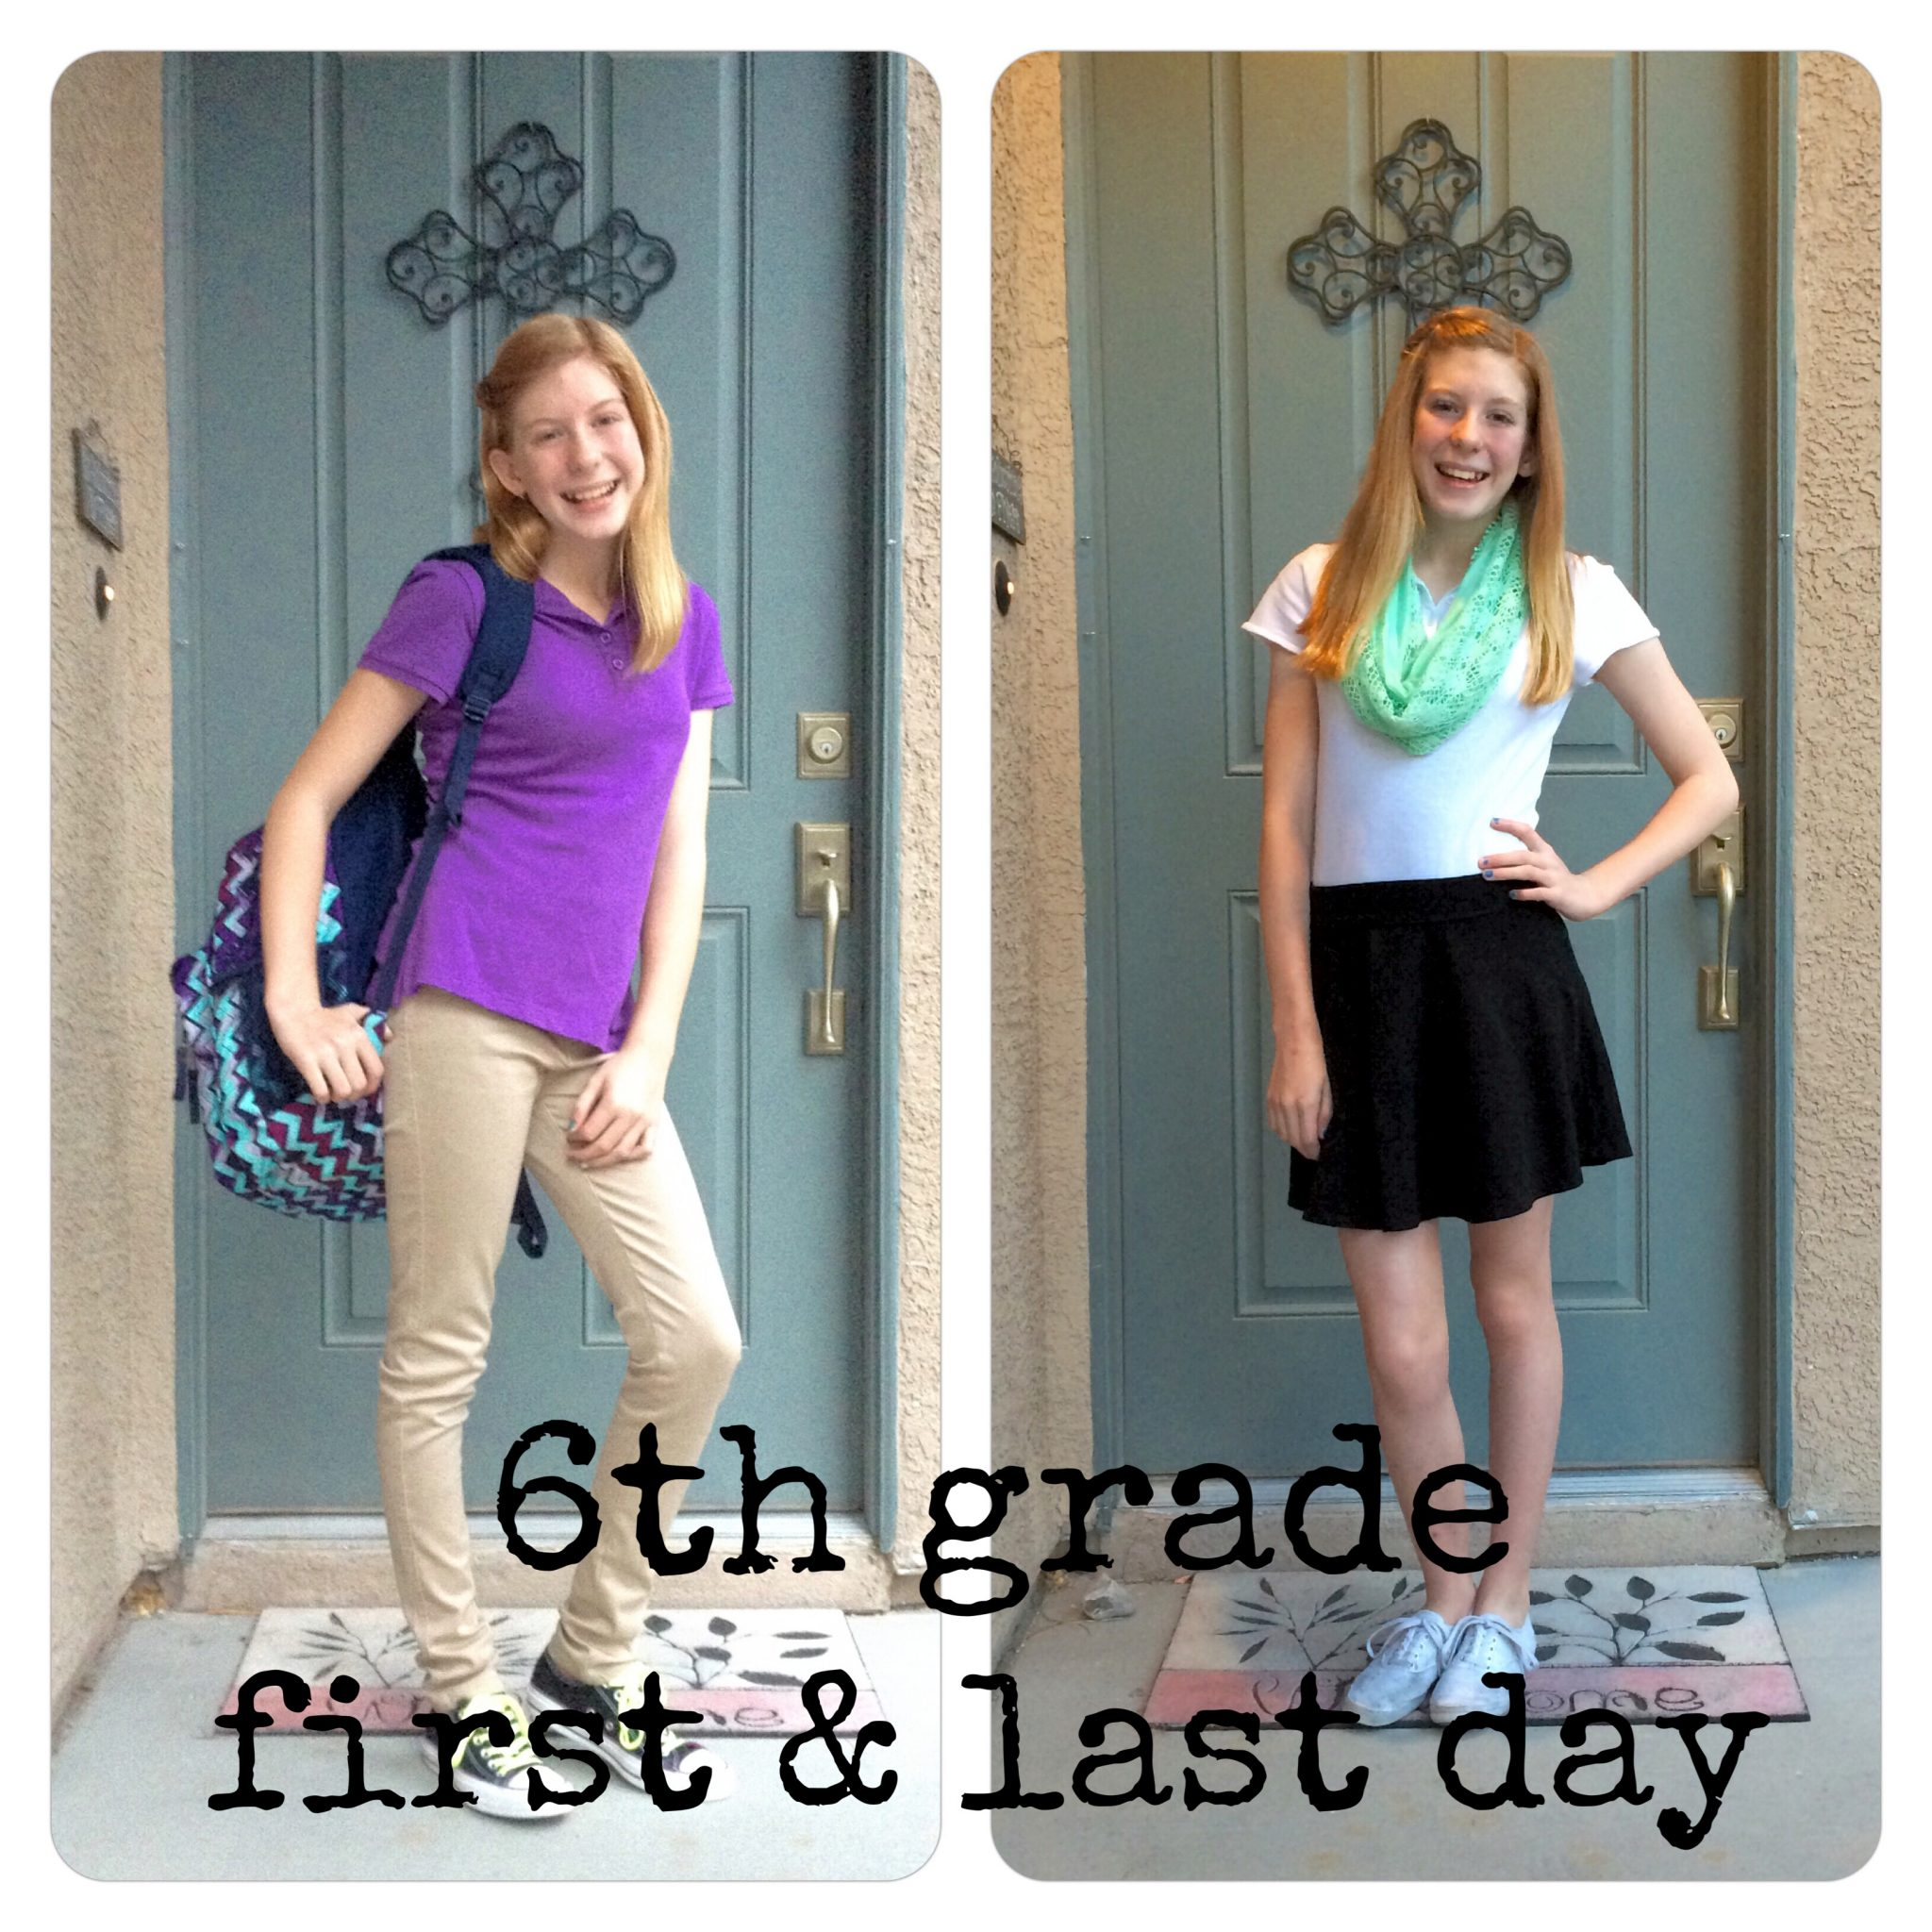 5th and 7th grader dating